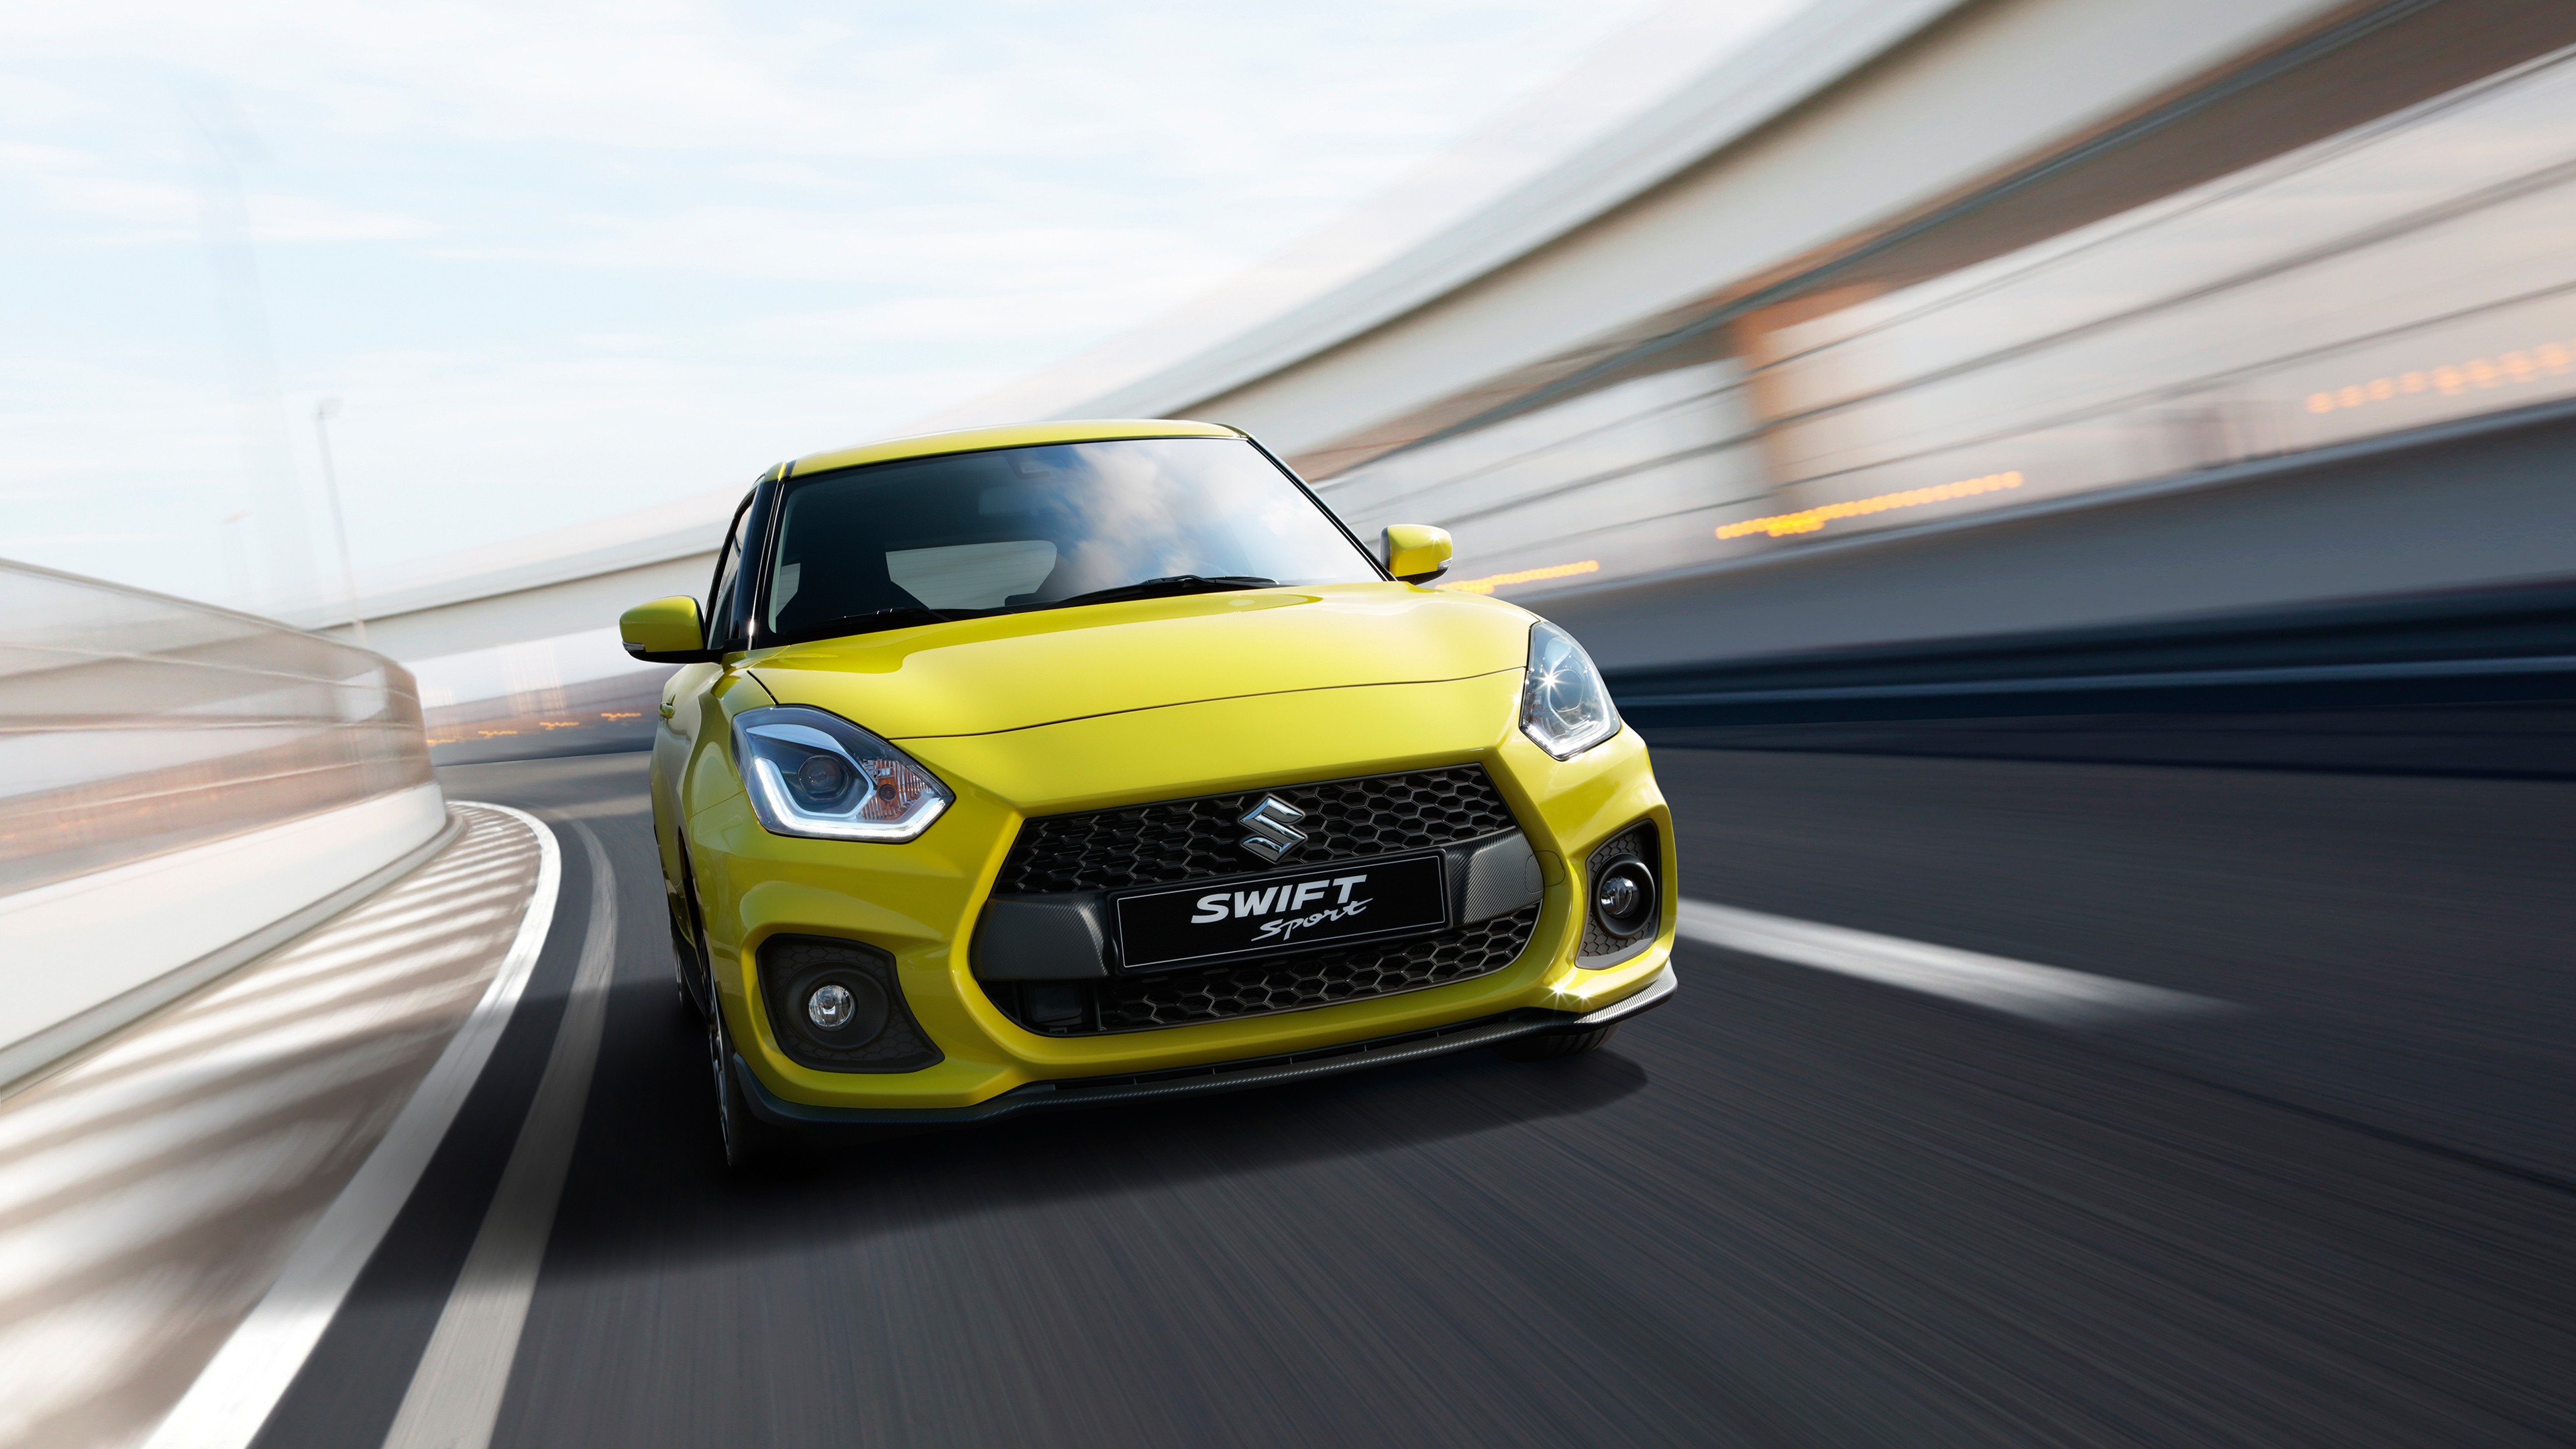 2018 Suzuki Swift Sport 4K Wallpaper HD Car Wallpapers ID 8515 3840x2160